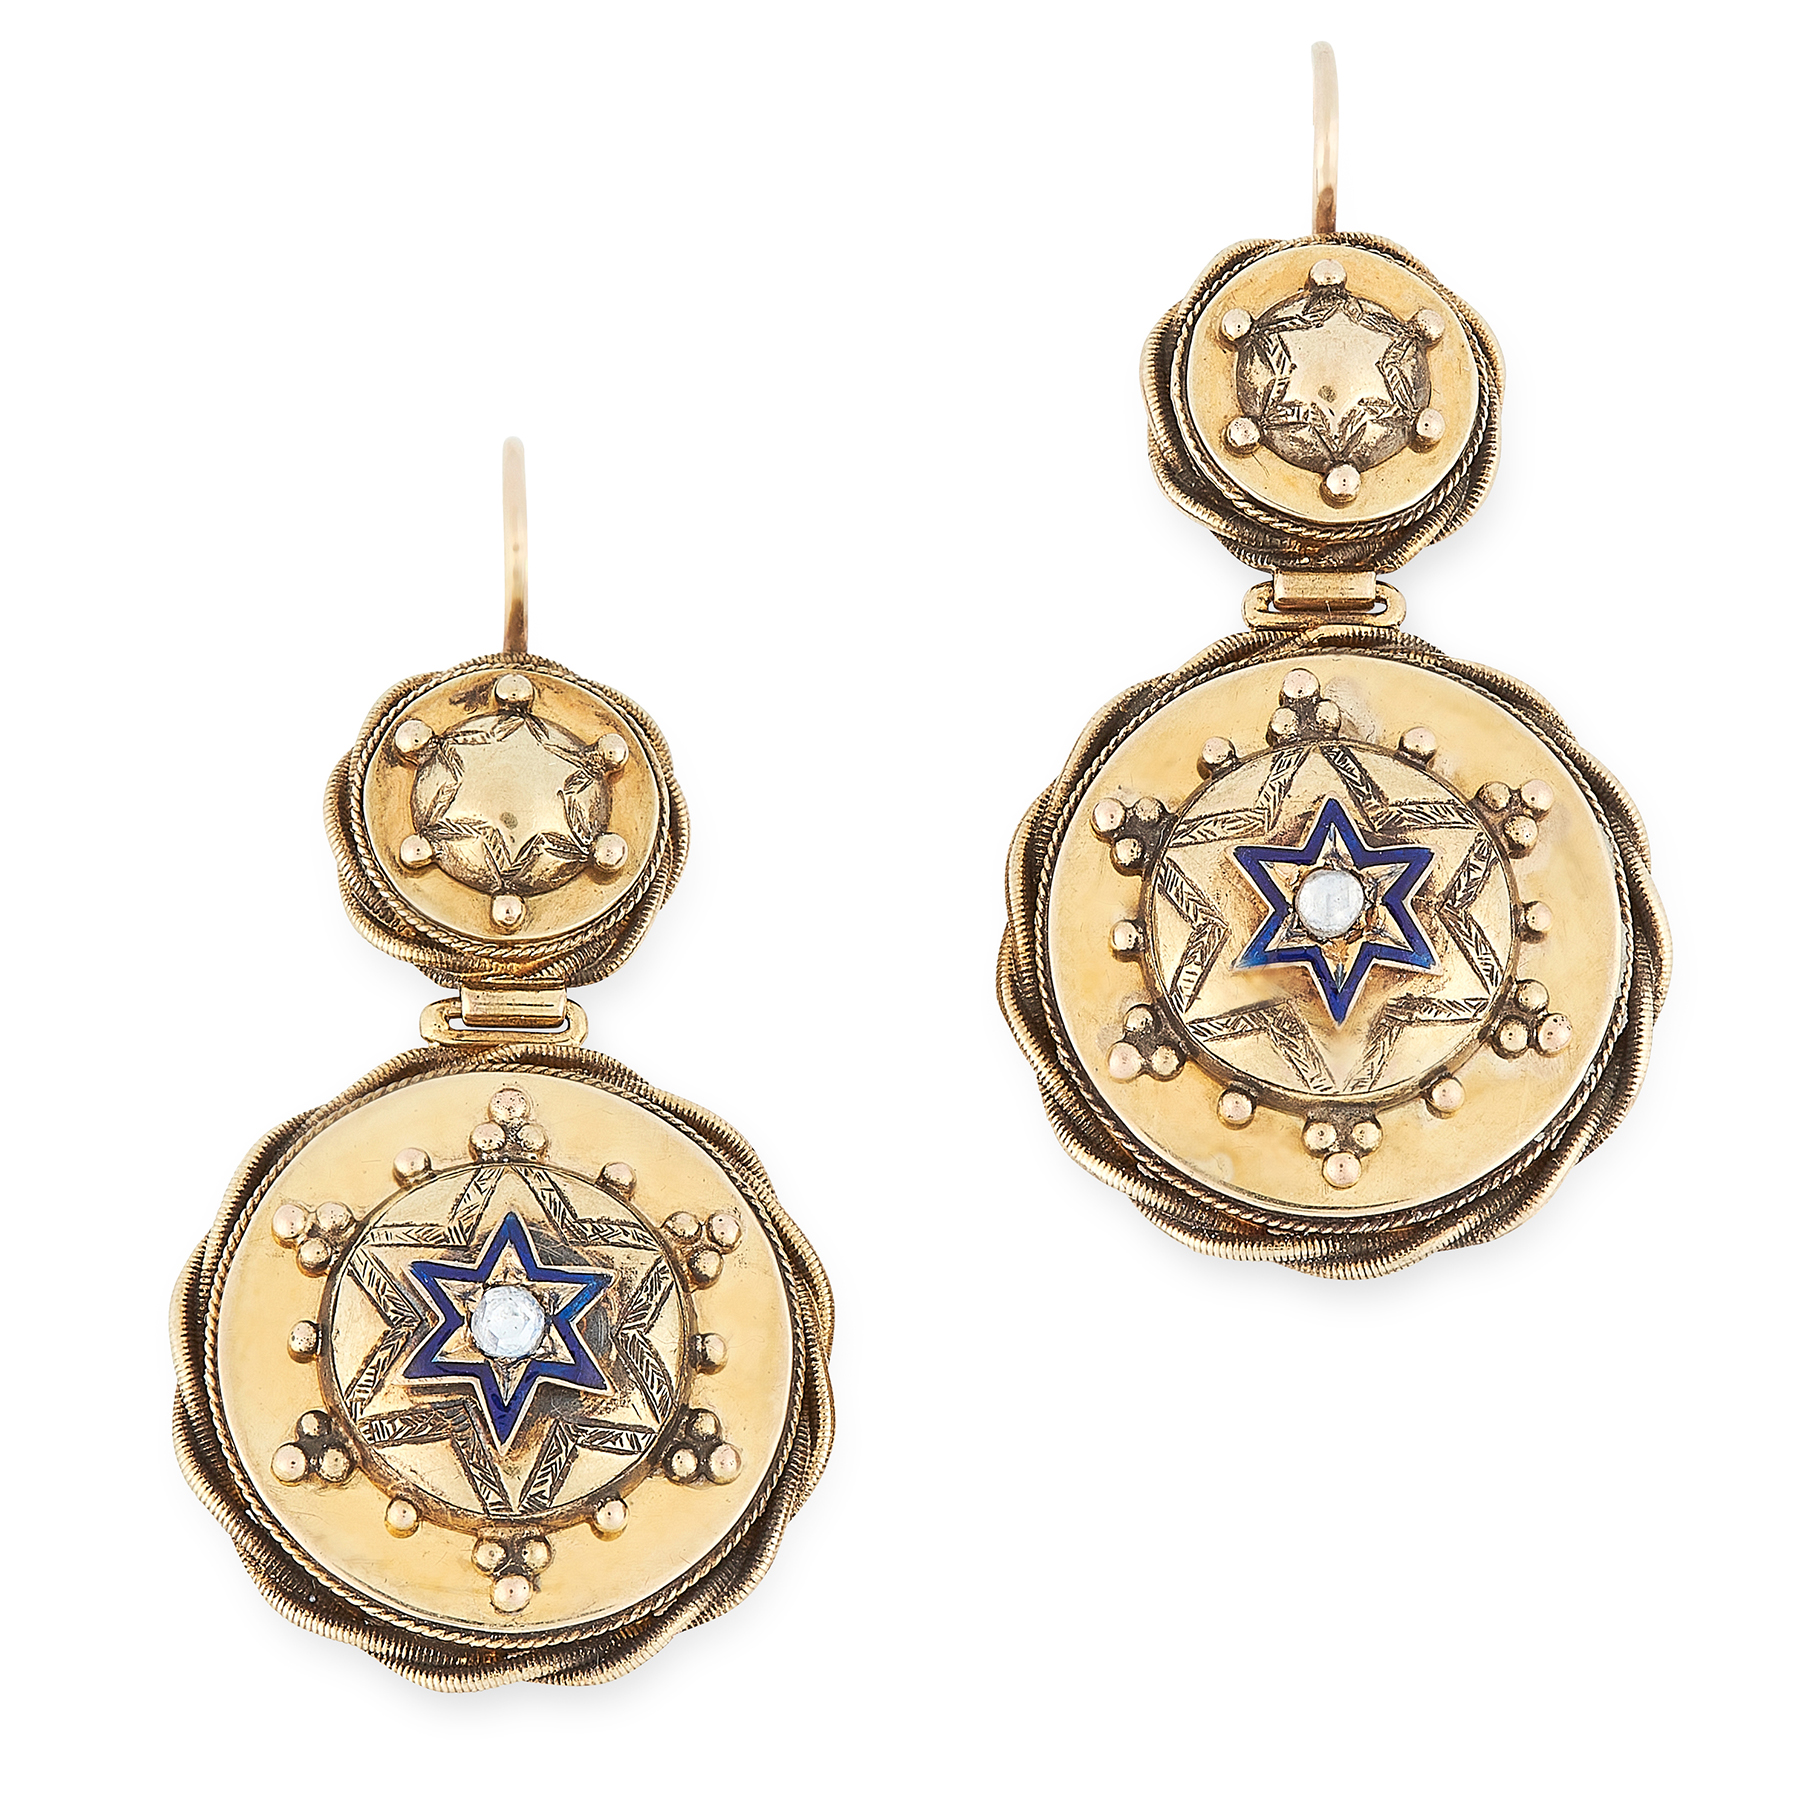 AN ANTIQUE DIAMOND AND ENAMEL MOURNING BROOCH AND EARRINGS SUITE, 19TH CENTURY in yellow gold, the